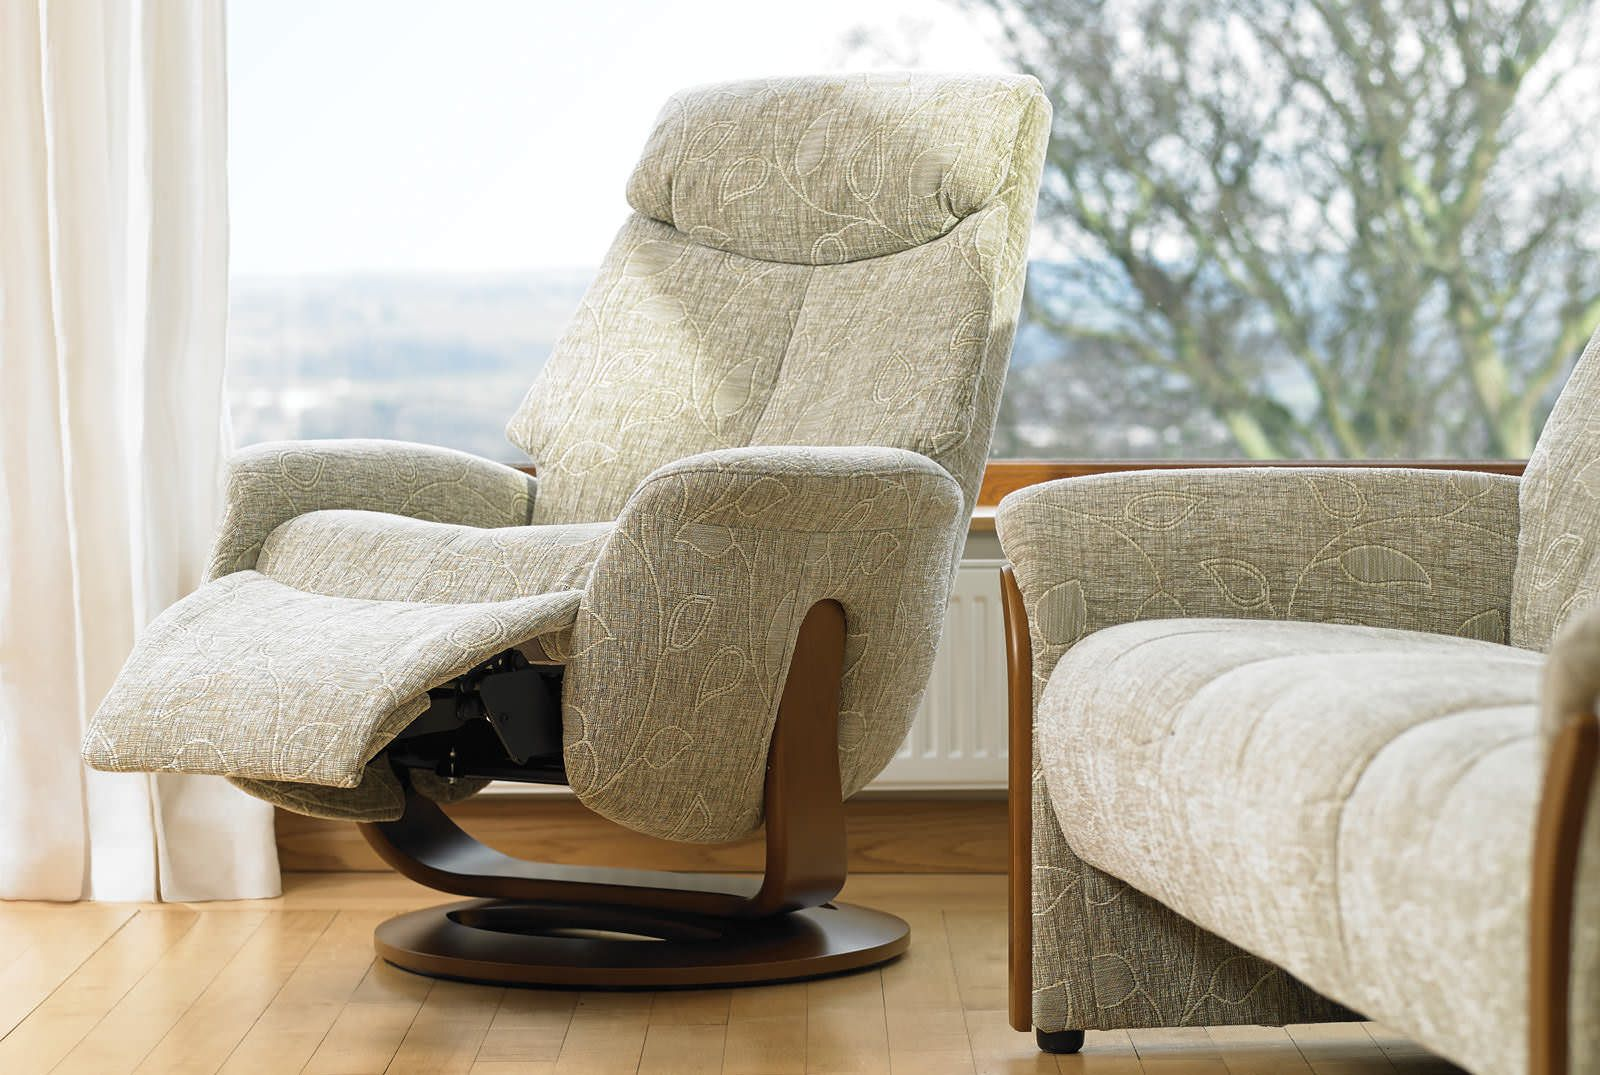 Swivel Rocker Recliner Chair Appealing Swivel Recliner Automated System For Home Furniture